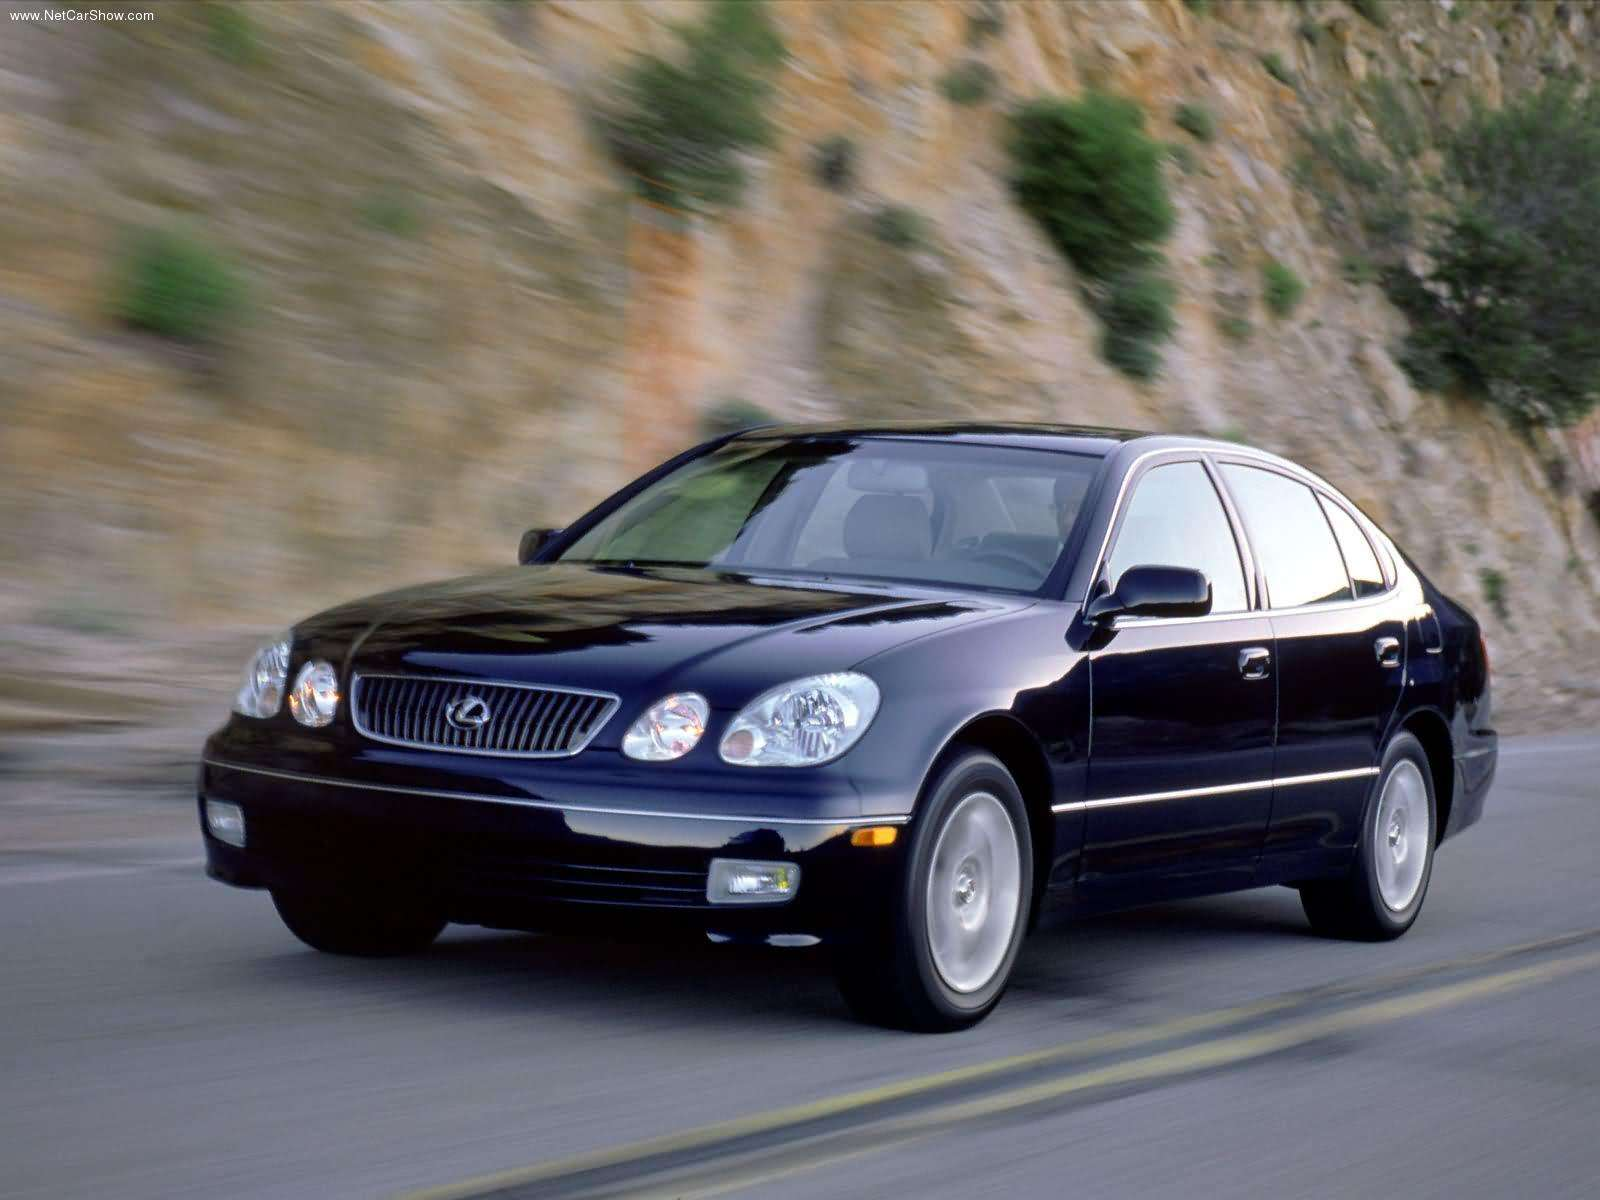 2004 Lexus GS 300 Information and photos ZombieDrive